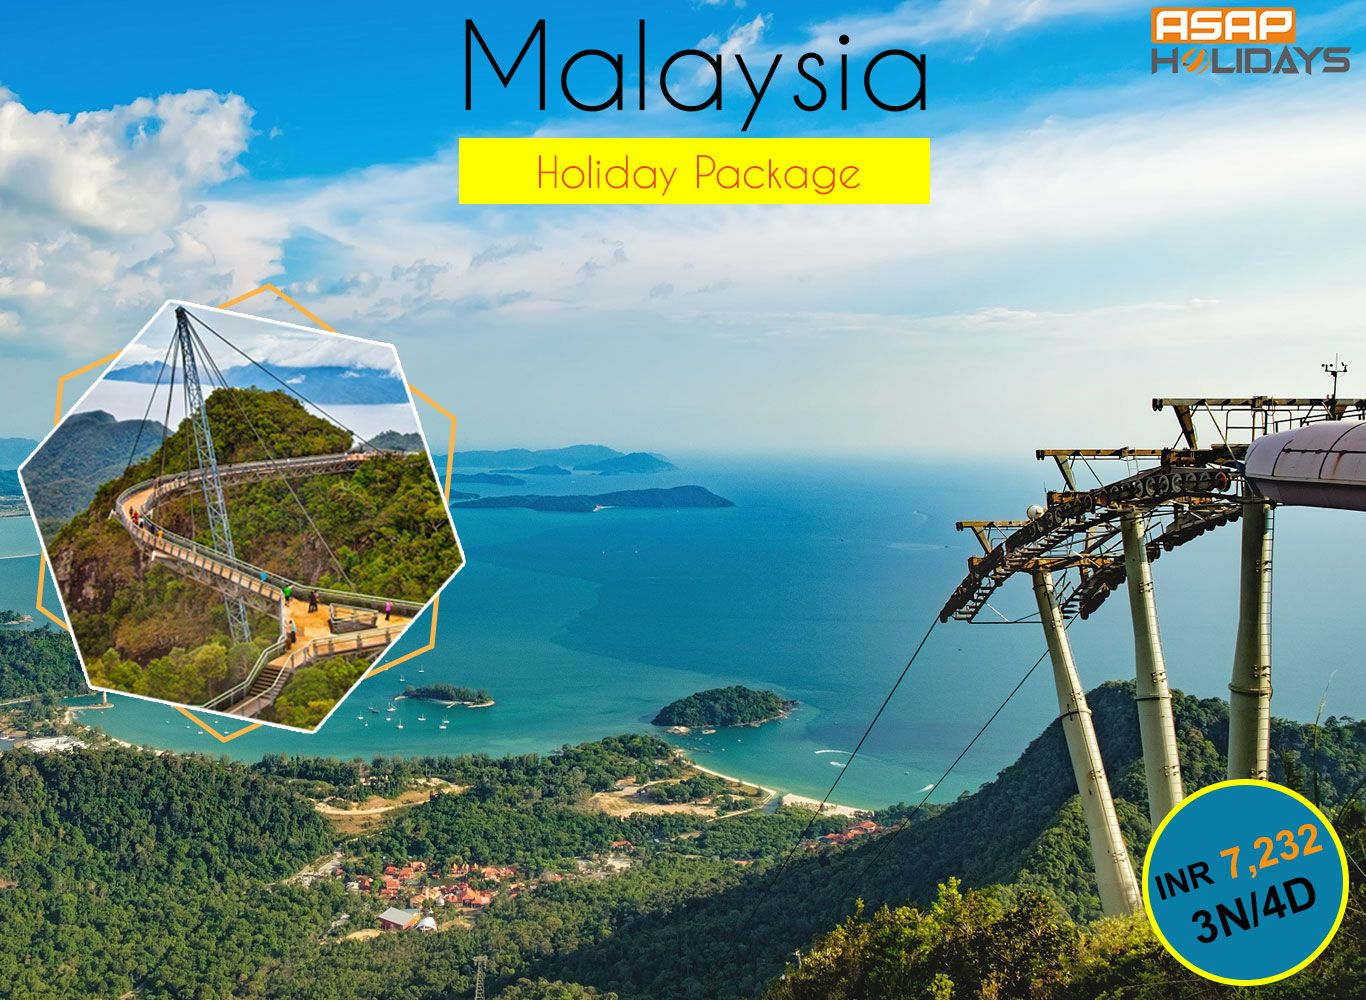 MalaysiaHolidayPackage 3N/4D just at INR 7,323 PP